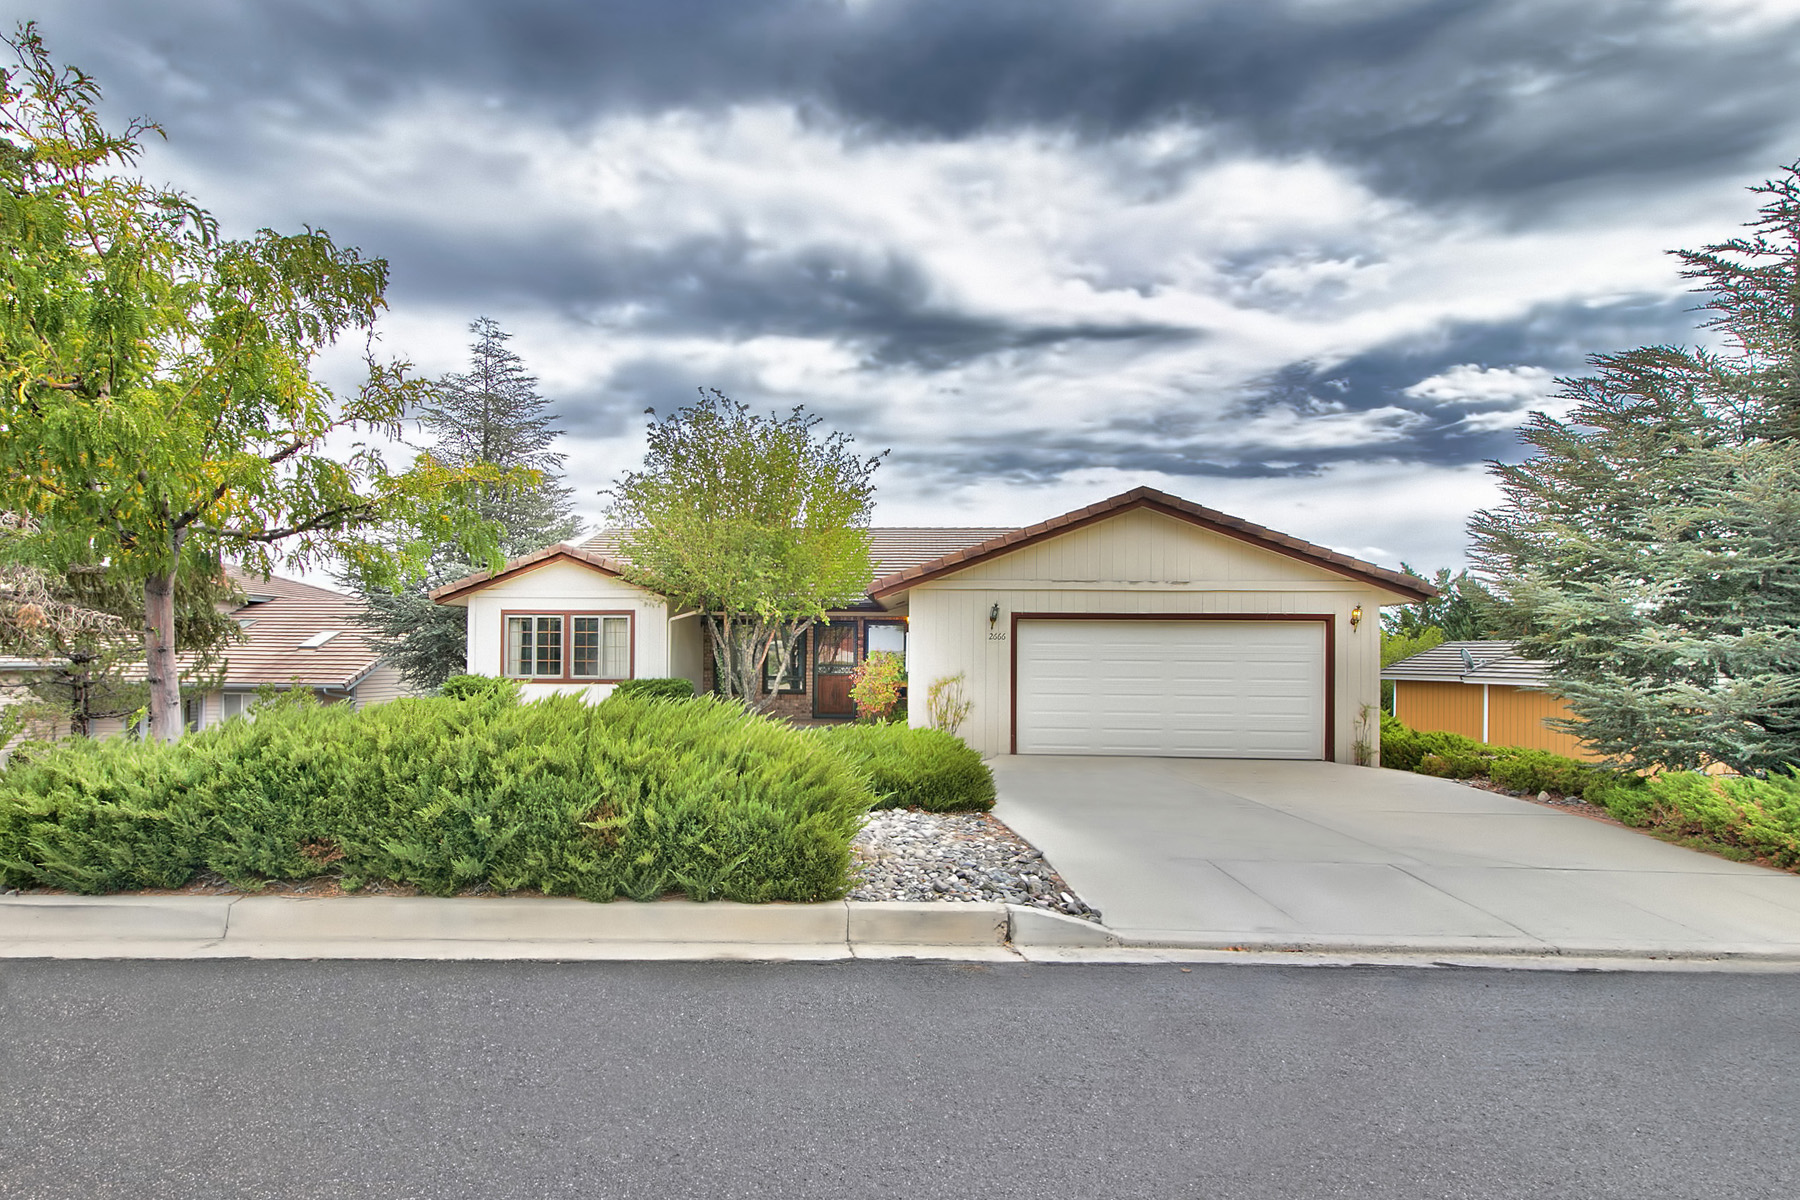 Single Family Home for Sale at 2666 Chaparral Reno, Nevada 89519 United States